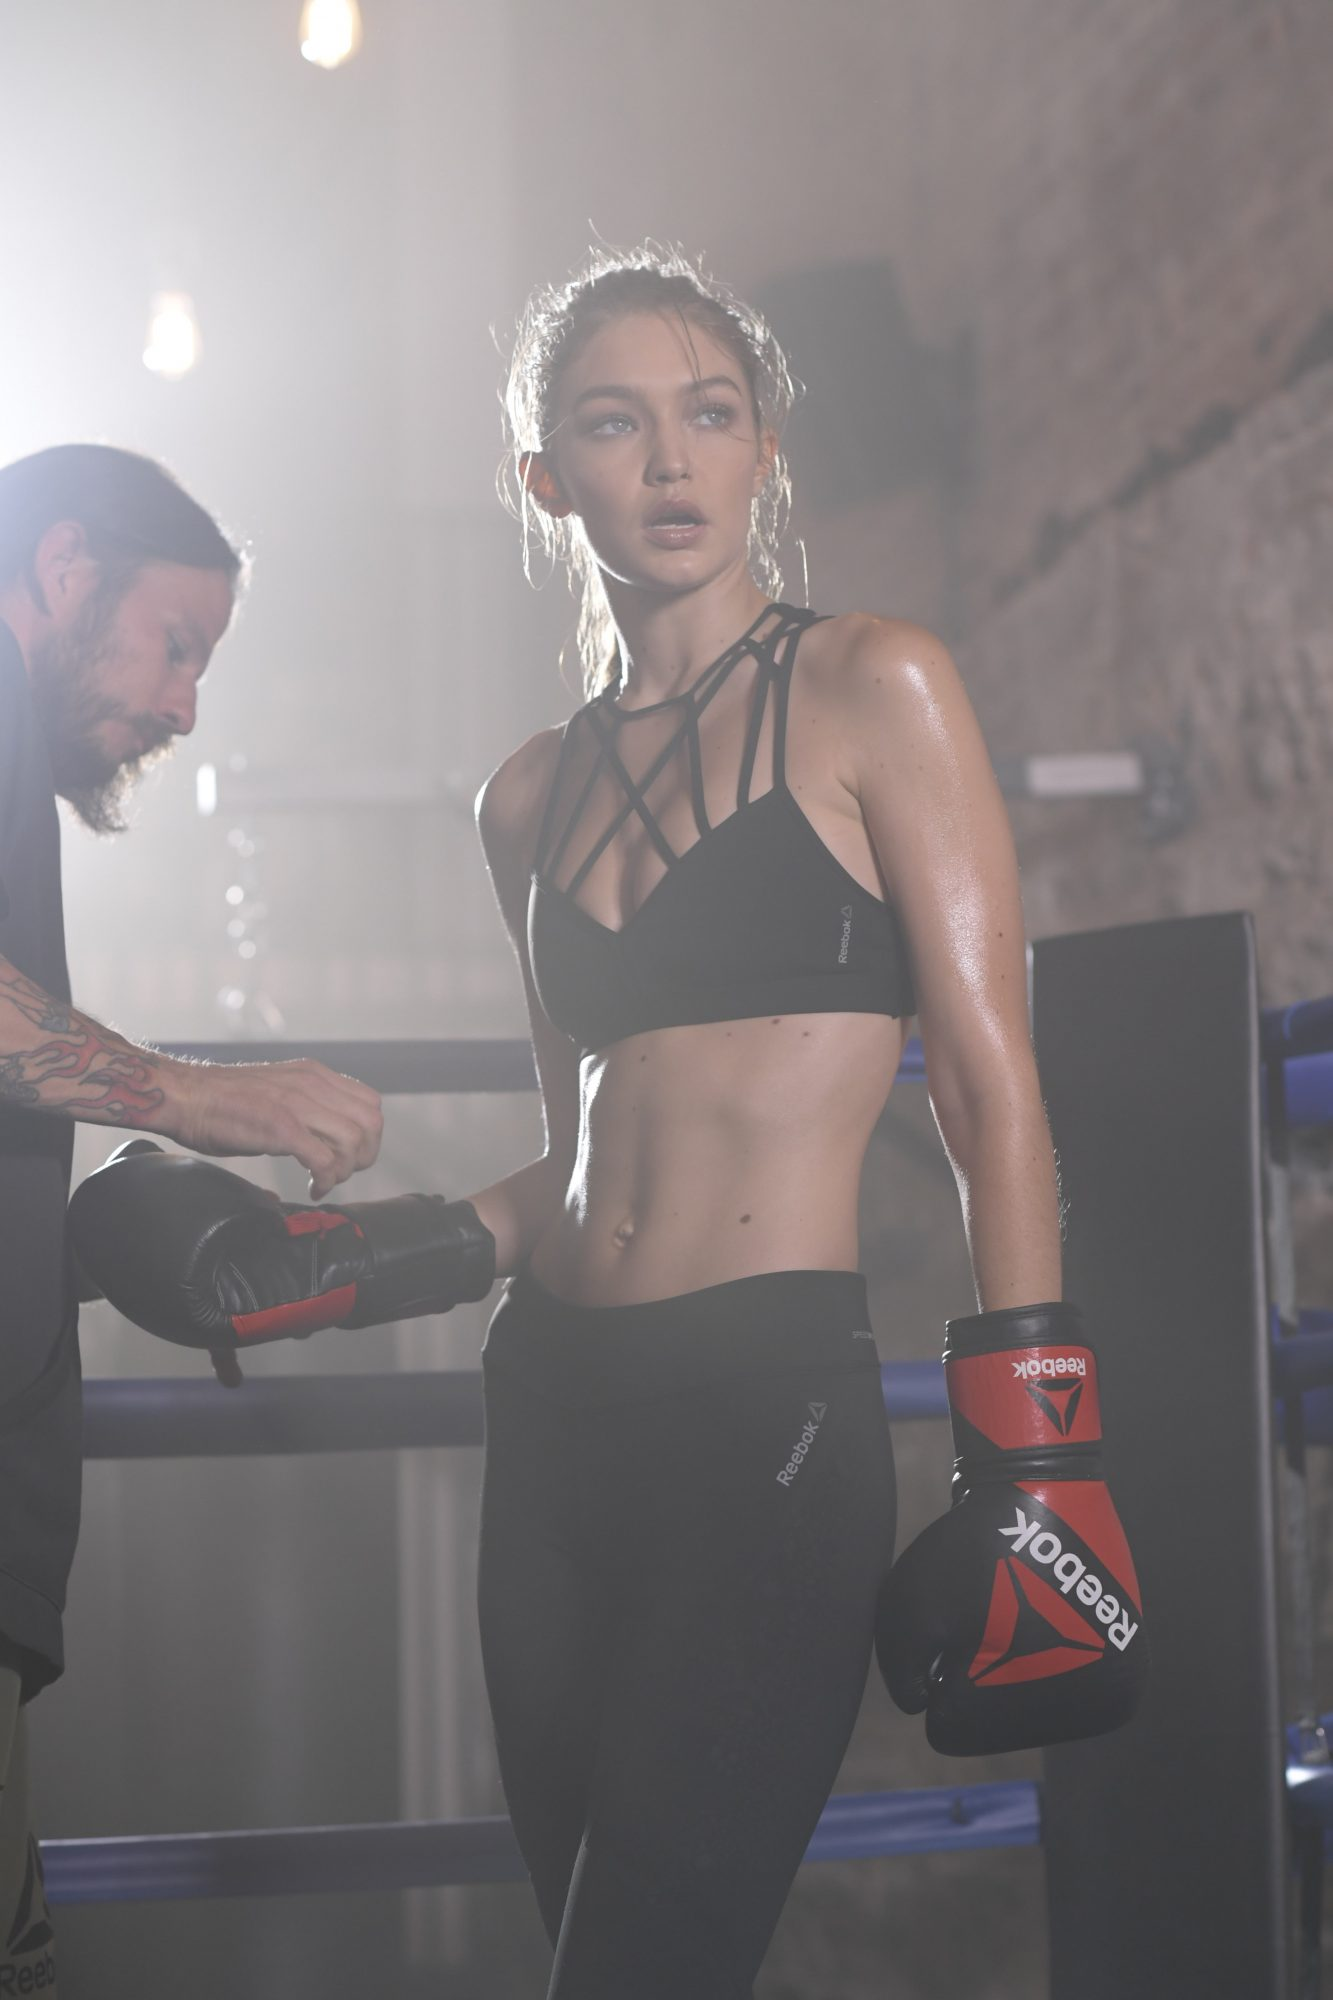 GIGI-HADID-JOINS-FORCES-WITH-REEBOK-TO-TELL-NEXT-PHASE-OF-BE-MORE-HUMAN-CAMPAIGN_7.jpg